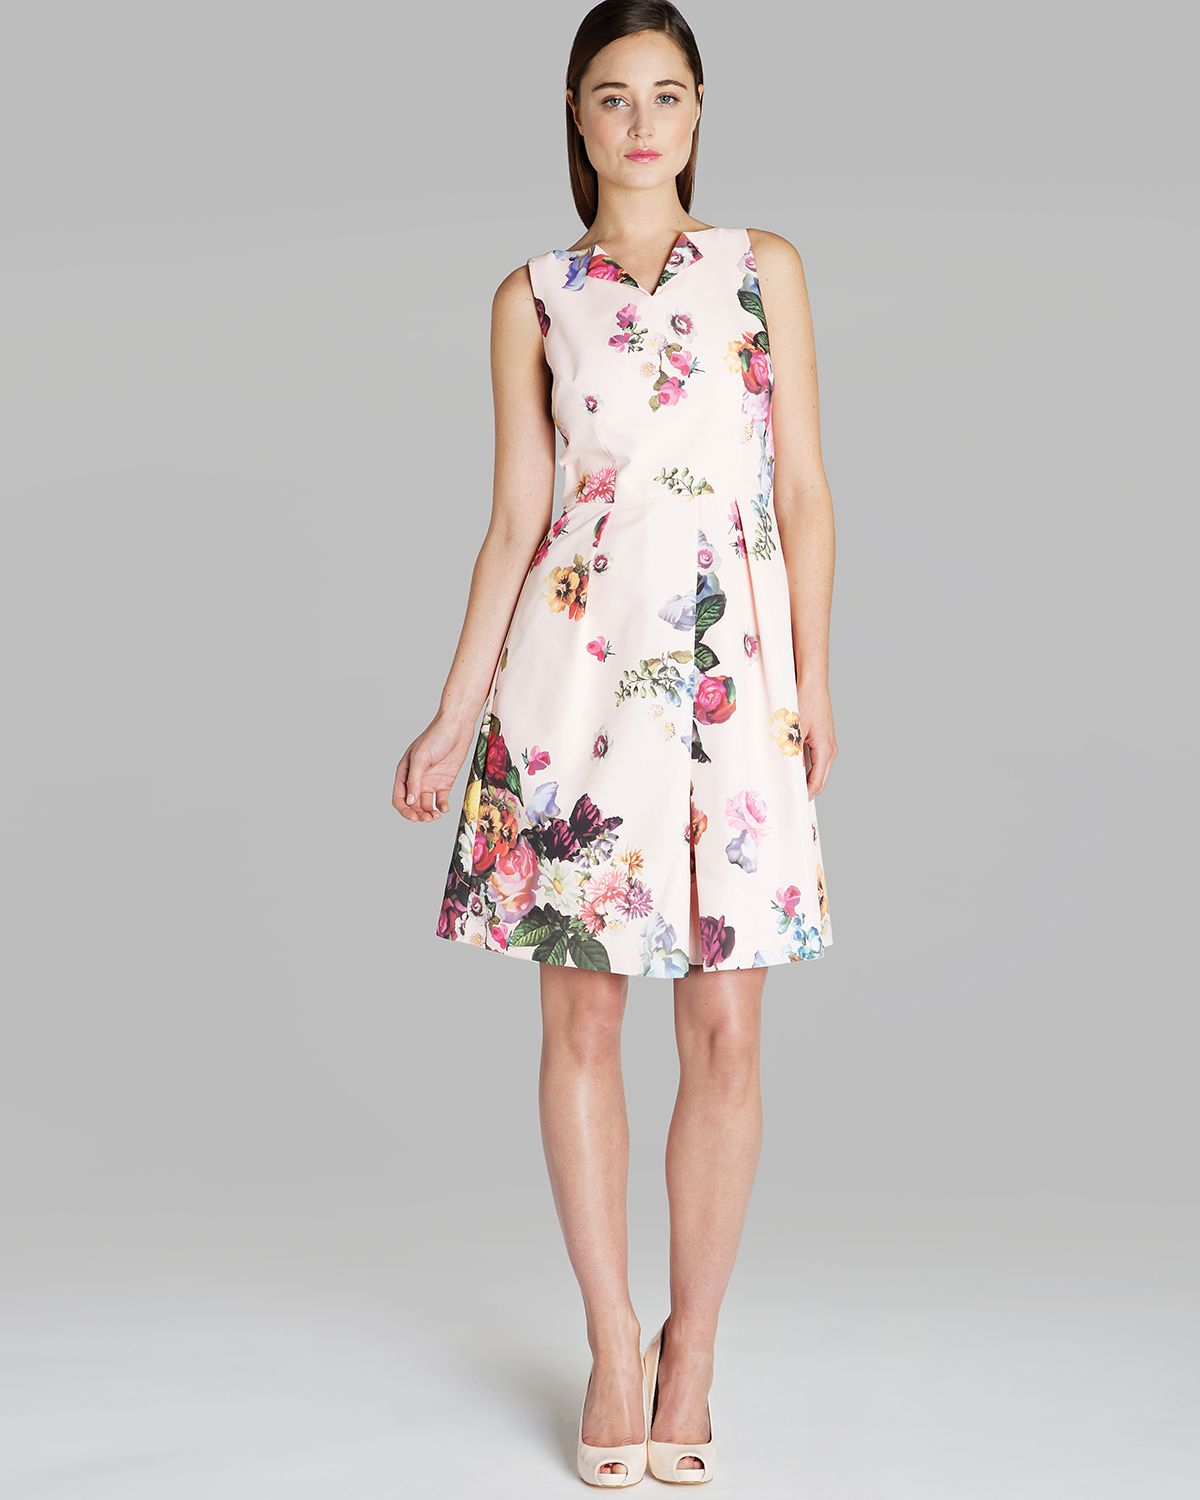 Flower Dress: Ted Baker Dress Deavon Floral Print In Pink